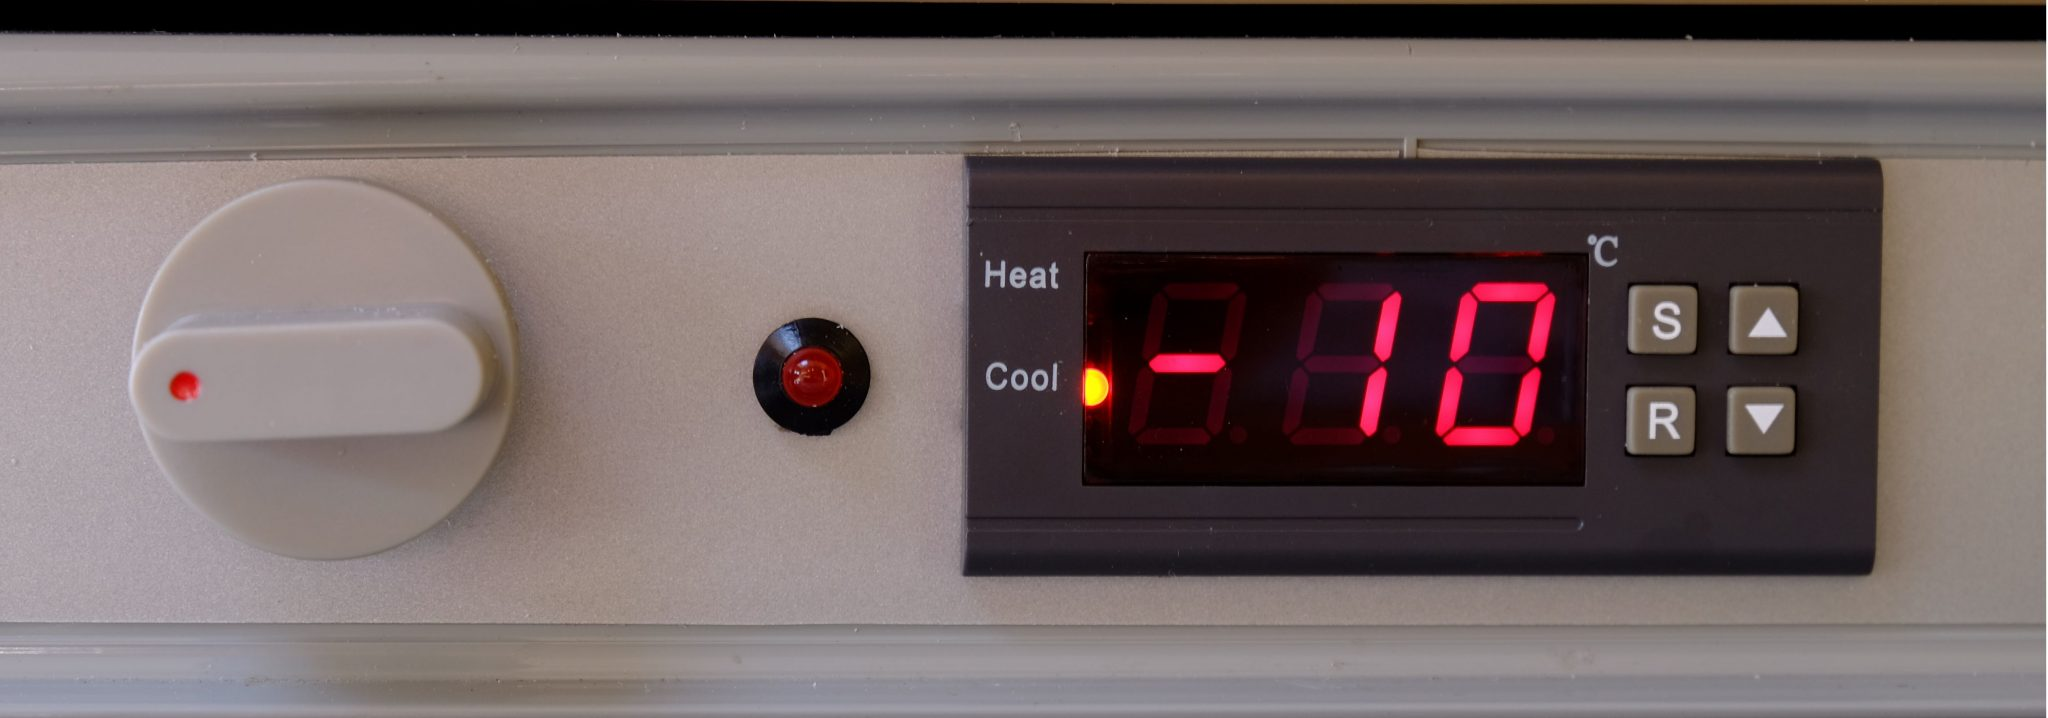 Digital heat/cool controller installed next to the original thermostat.